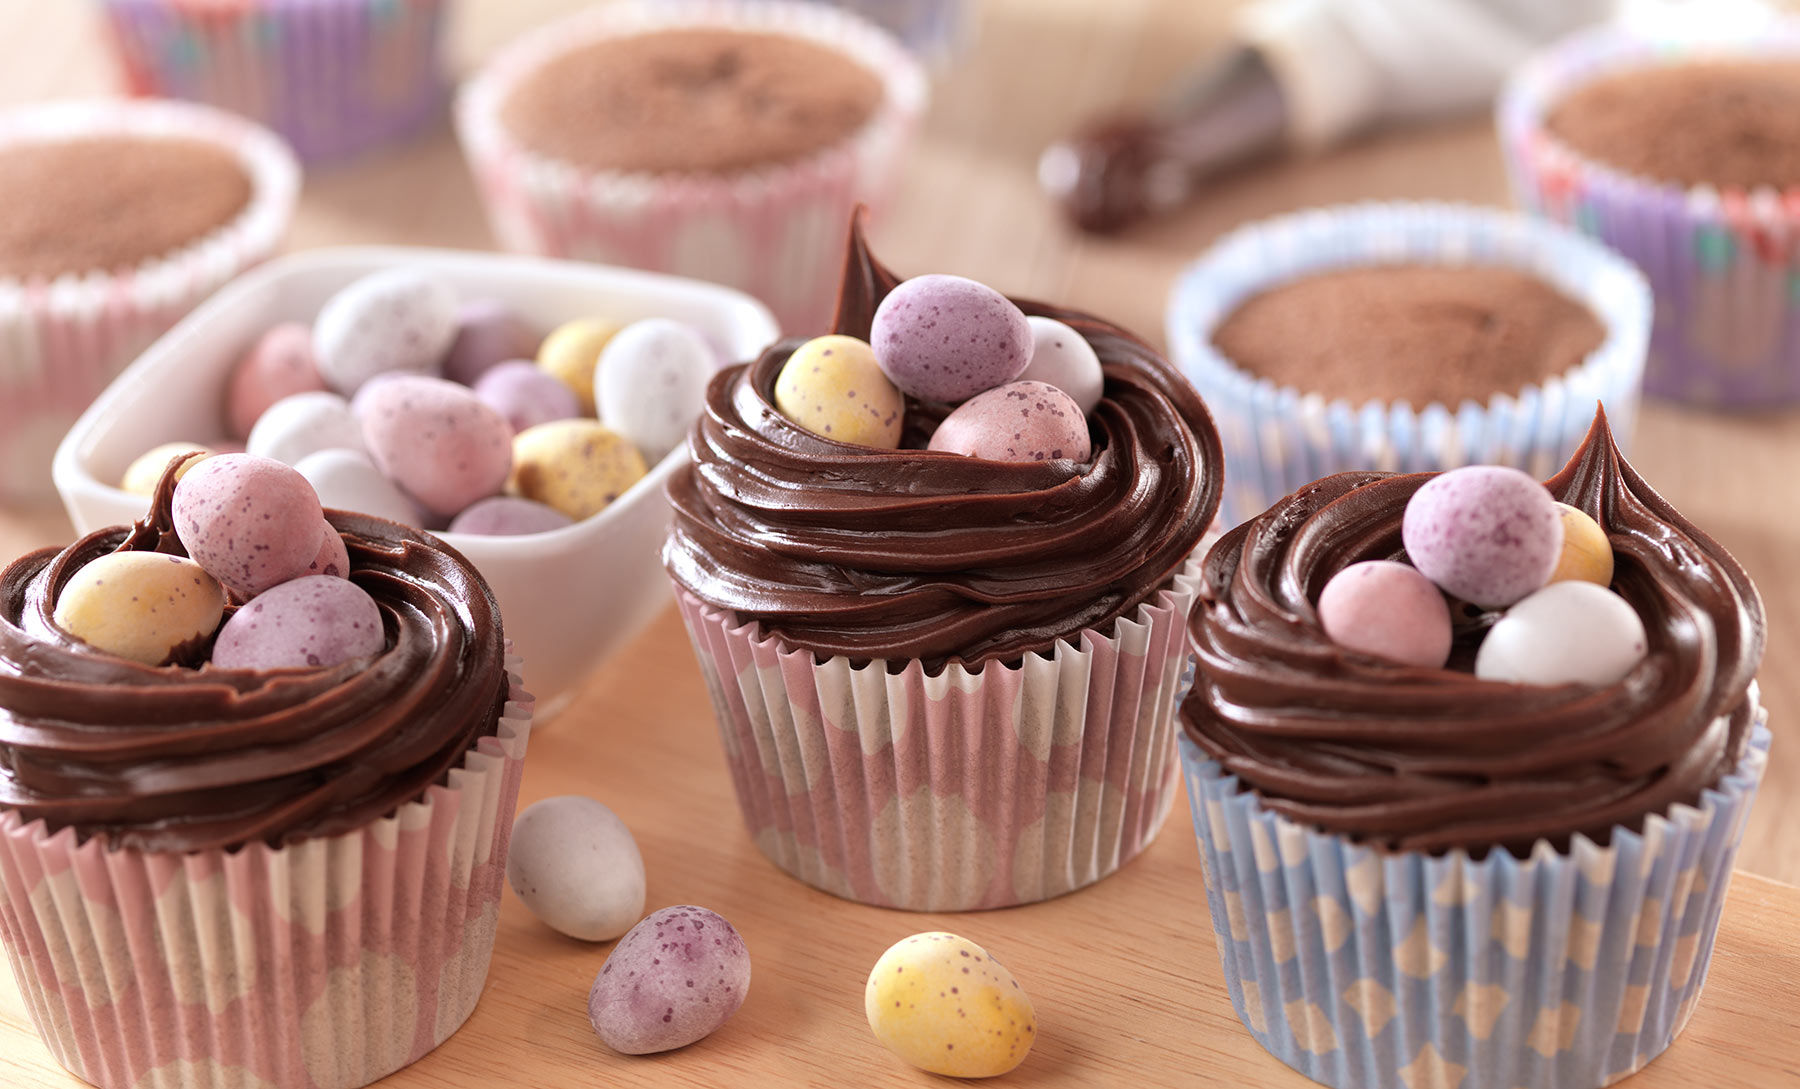 30 Admirable Easter Cupcakes